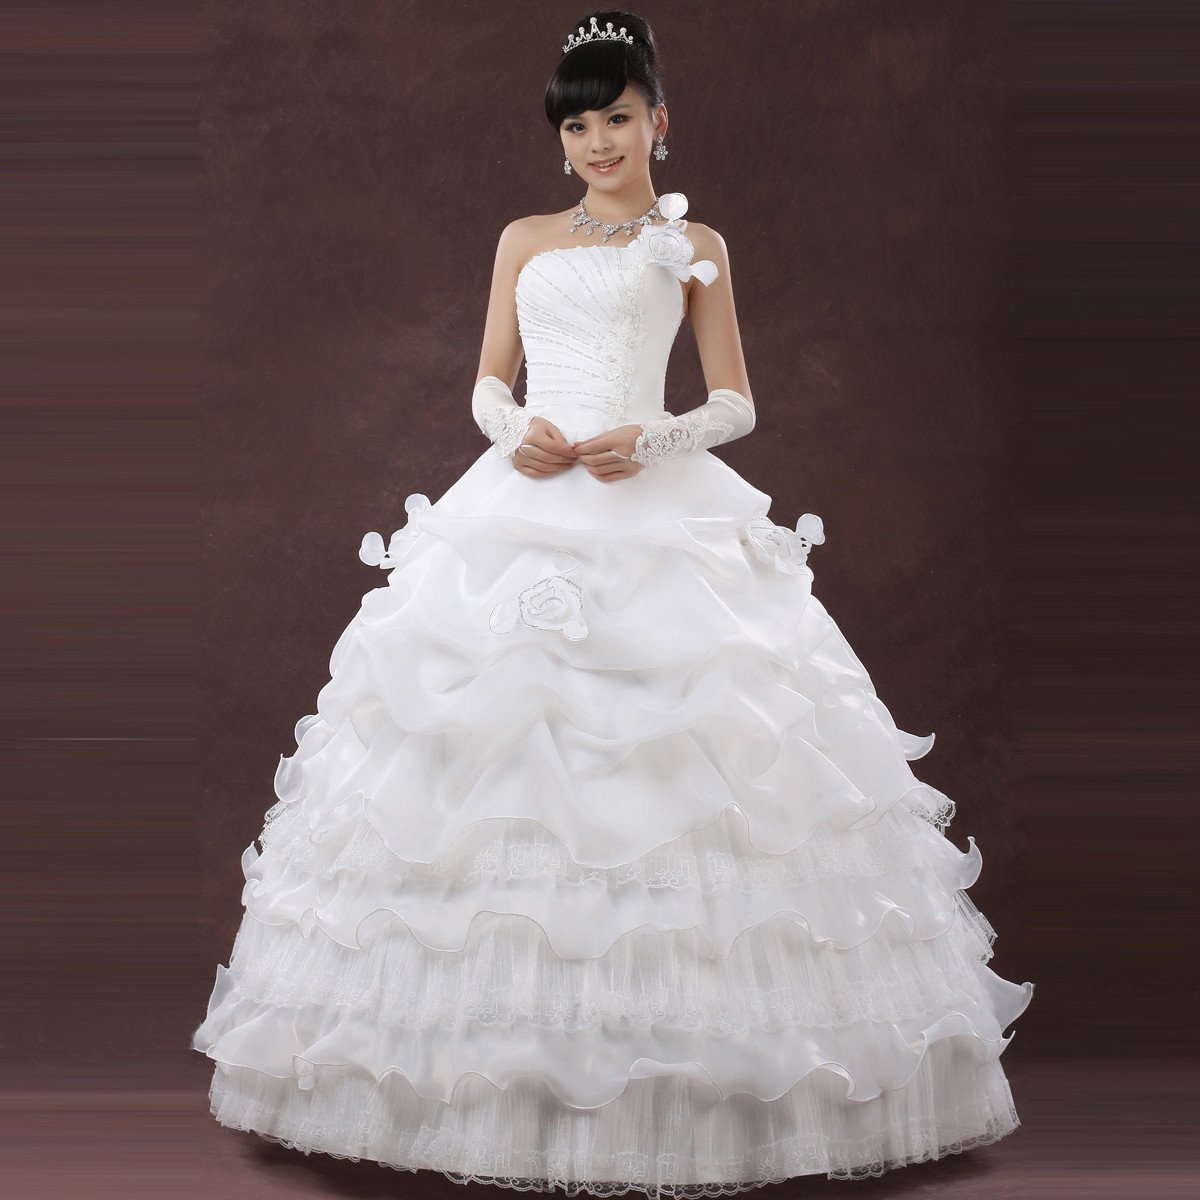 Wedding Gowns Online Cheap: Wedding And Bridal Inspiration